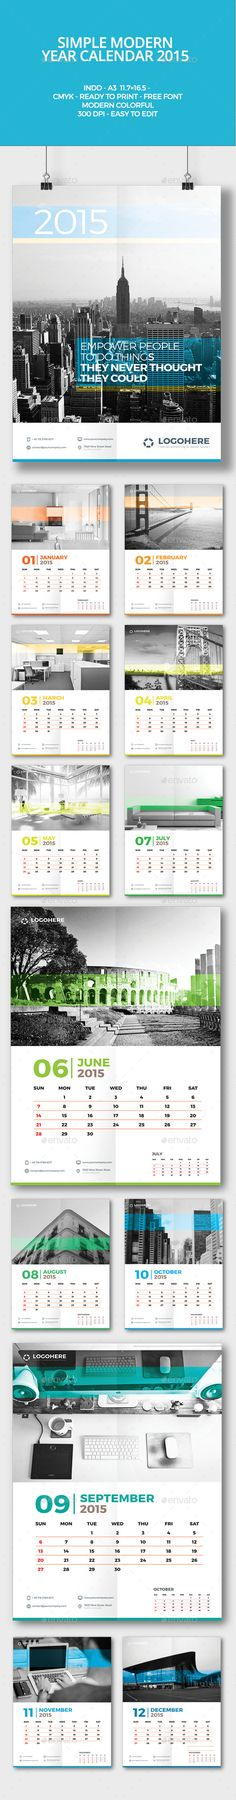 Simple Modern Year Calendar 2015 - Calendars Stationery